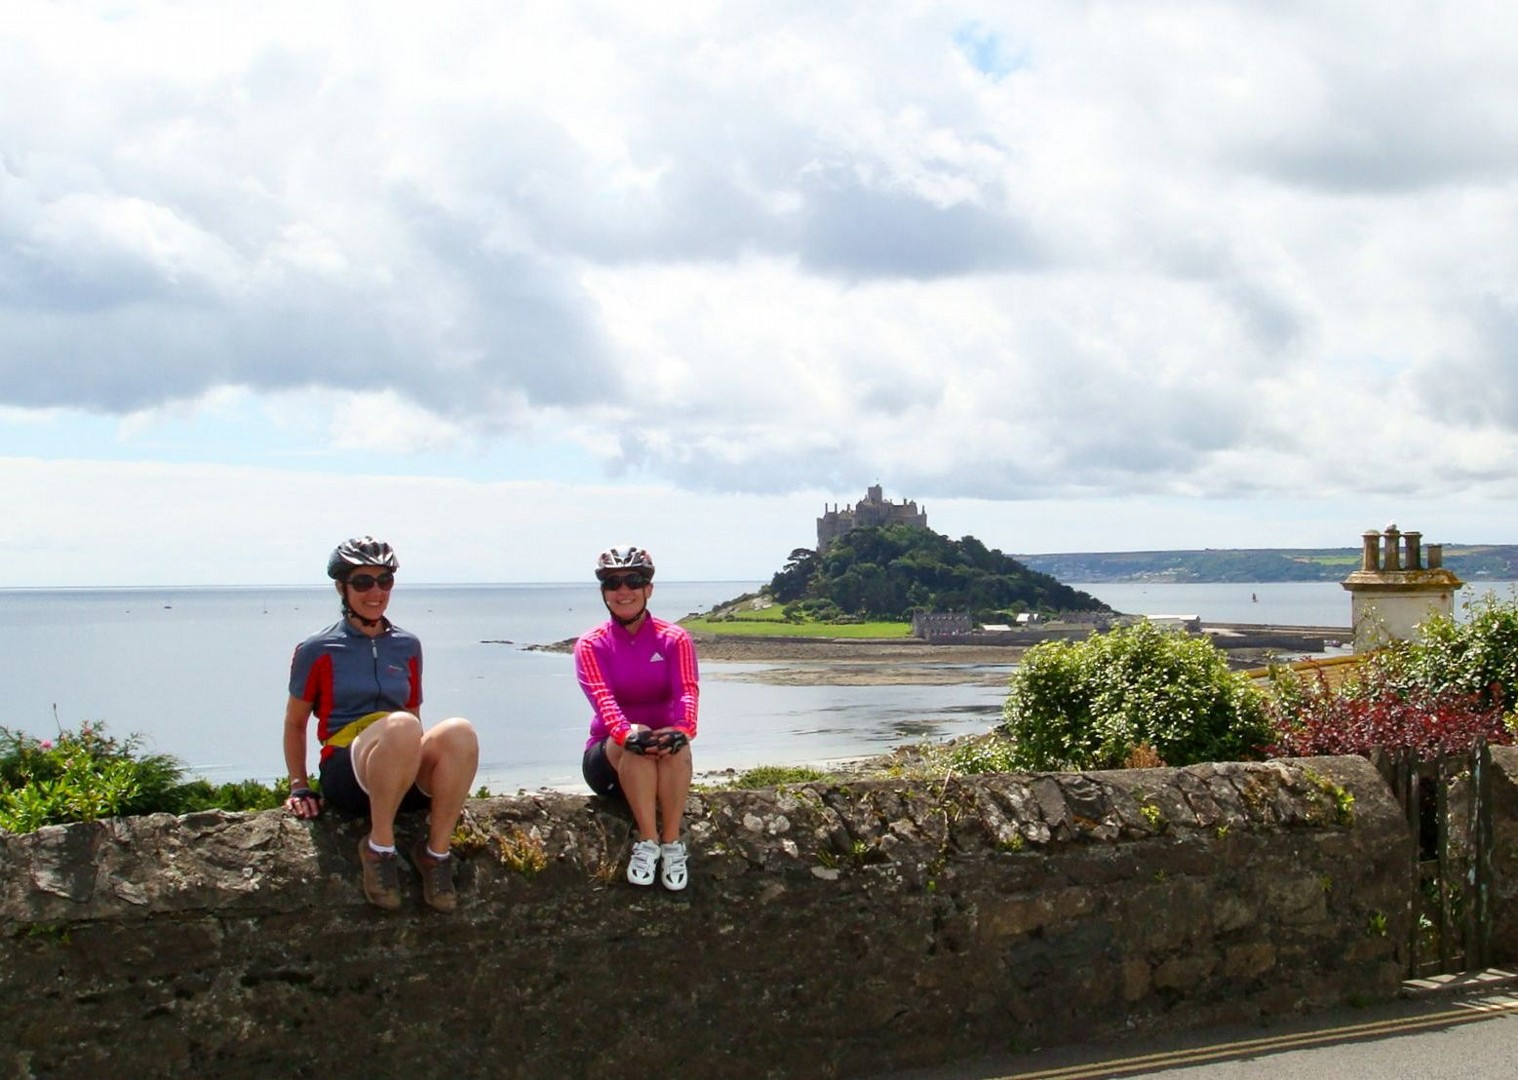 cycling-holiday-sustrans-guided.jpg - UK - Land's End to John O'Groats Explorer (22 days) - Guided Cycling Holiday - Leisure Cycling